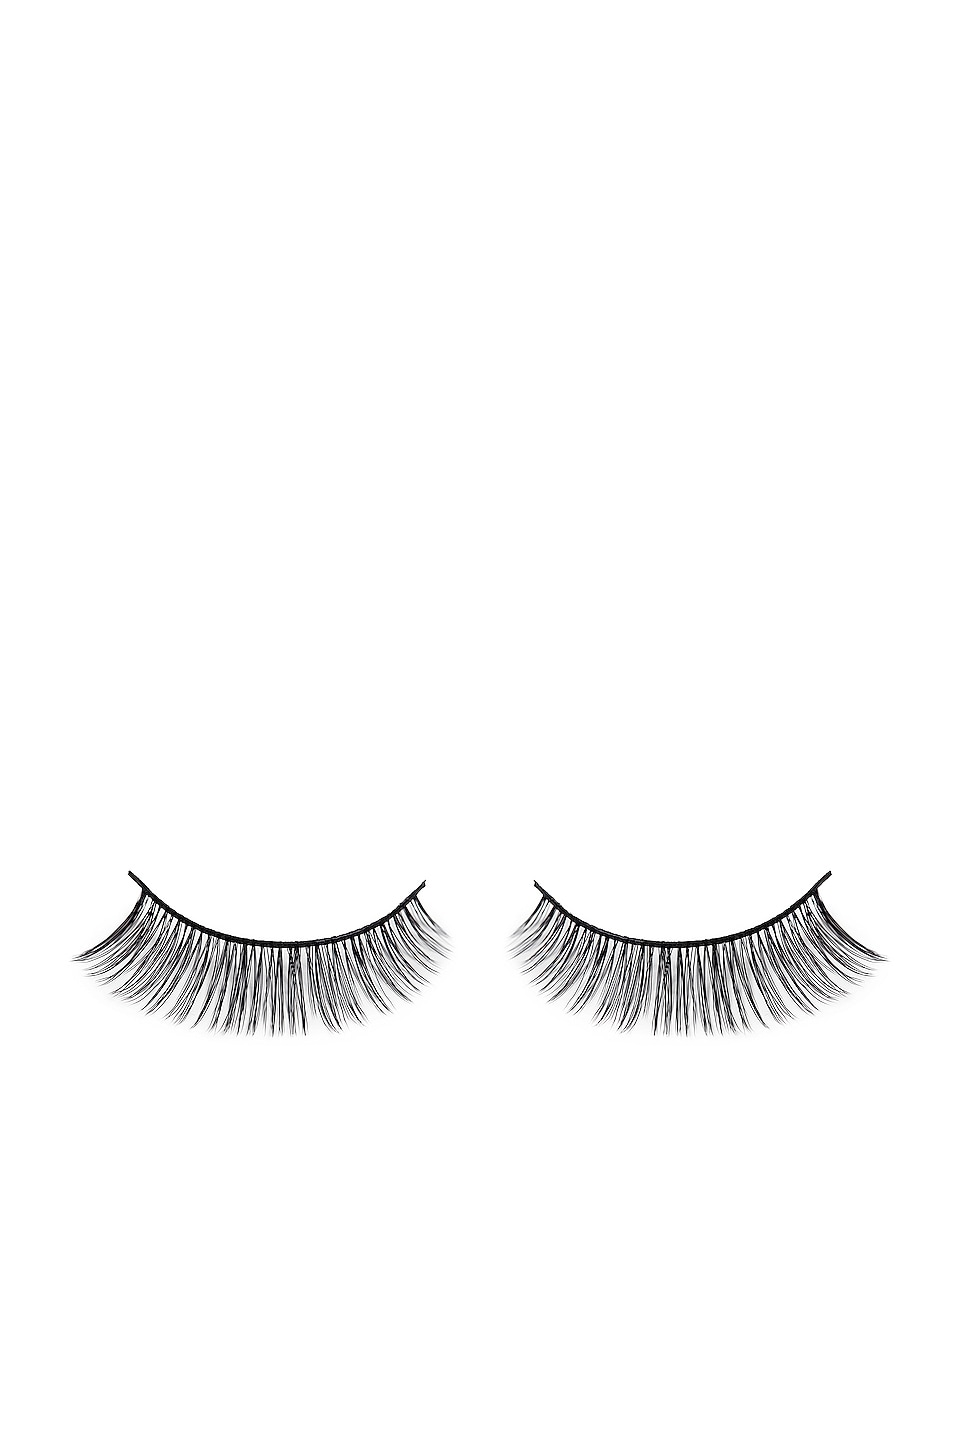 Battington Lashes PESTAÑAS KENNEDY